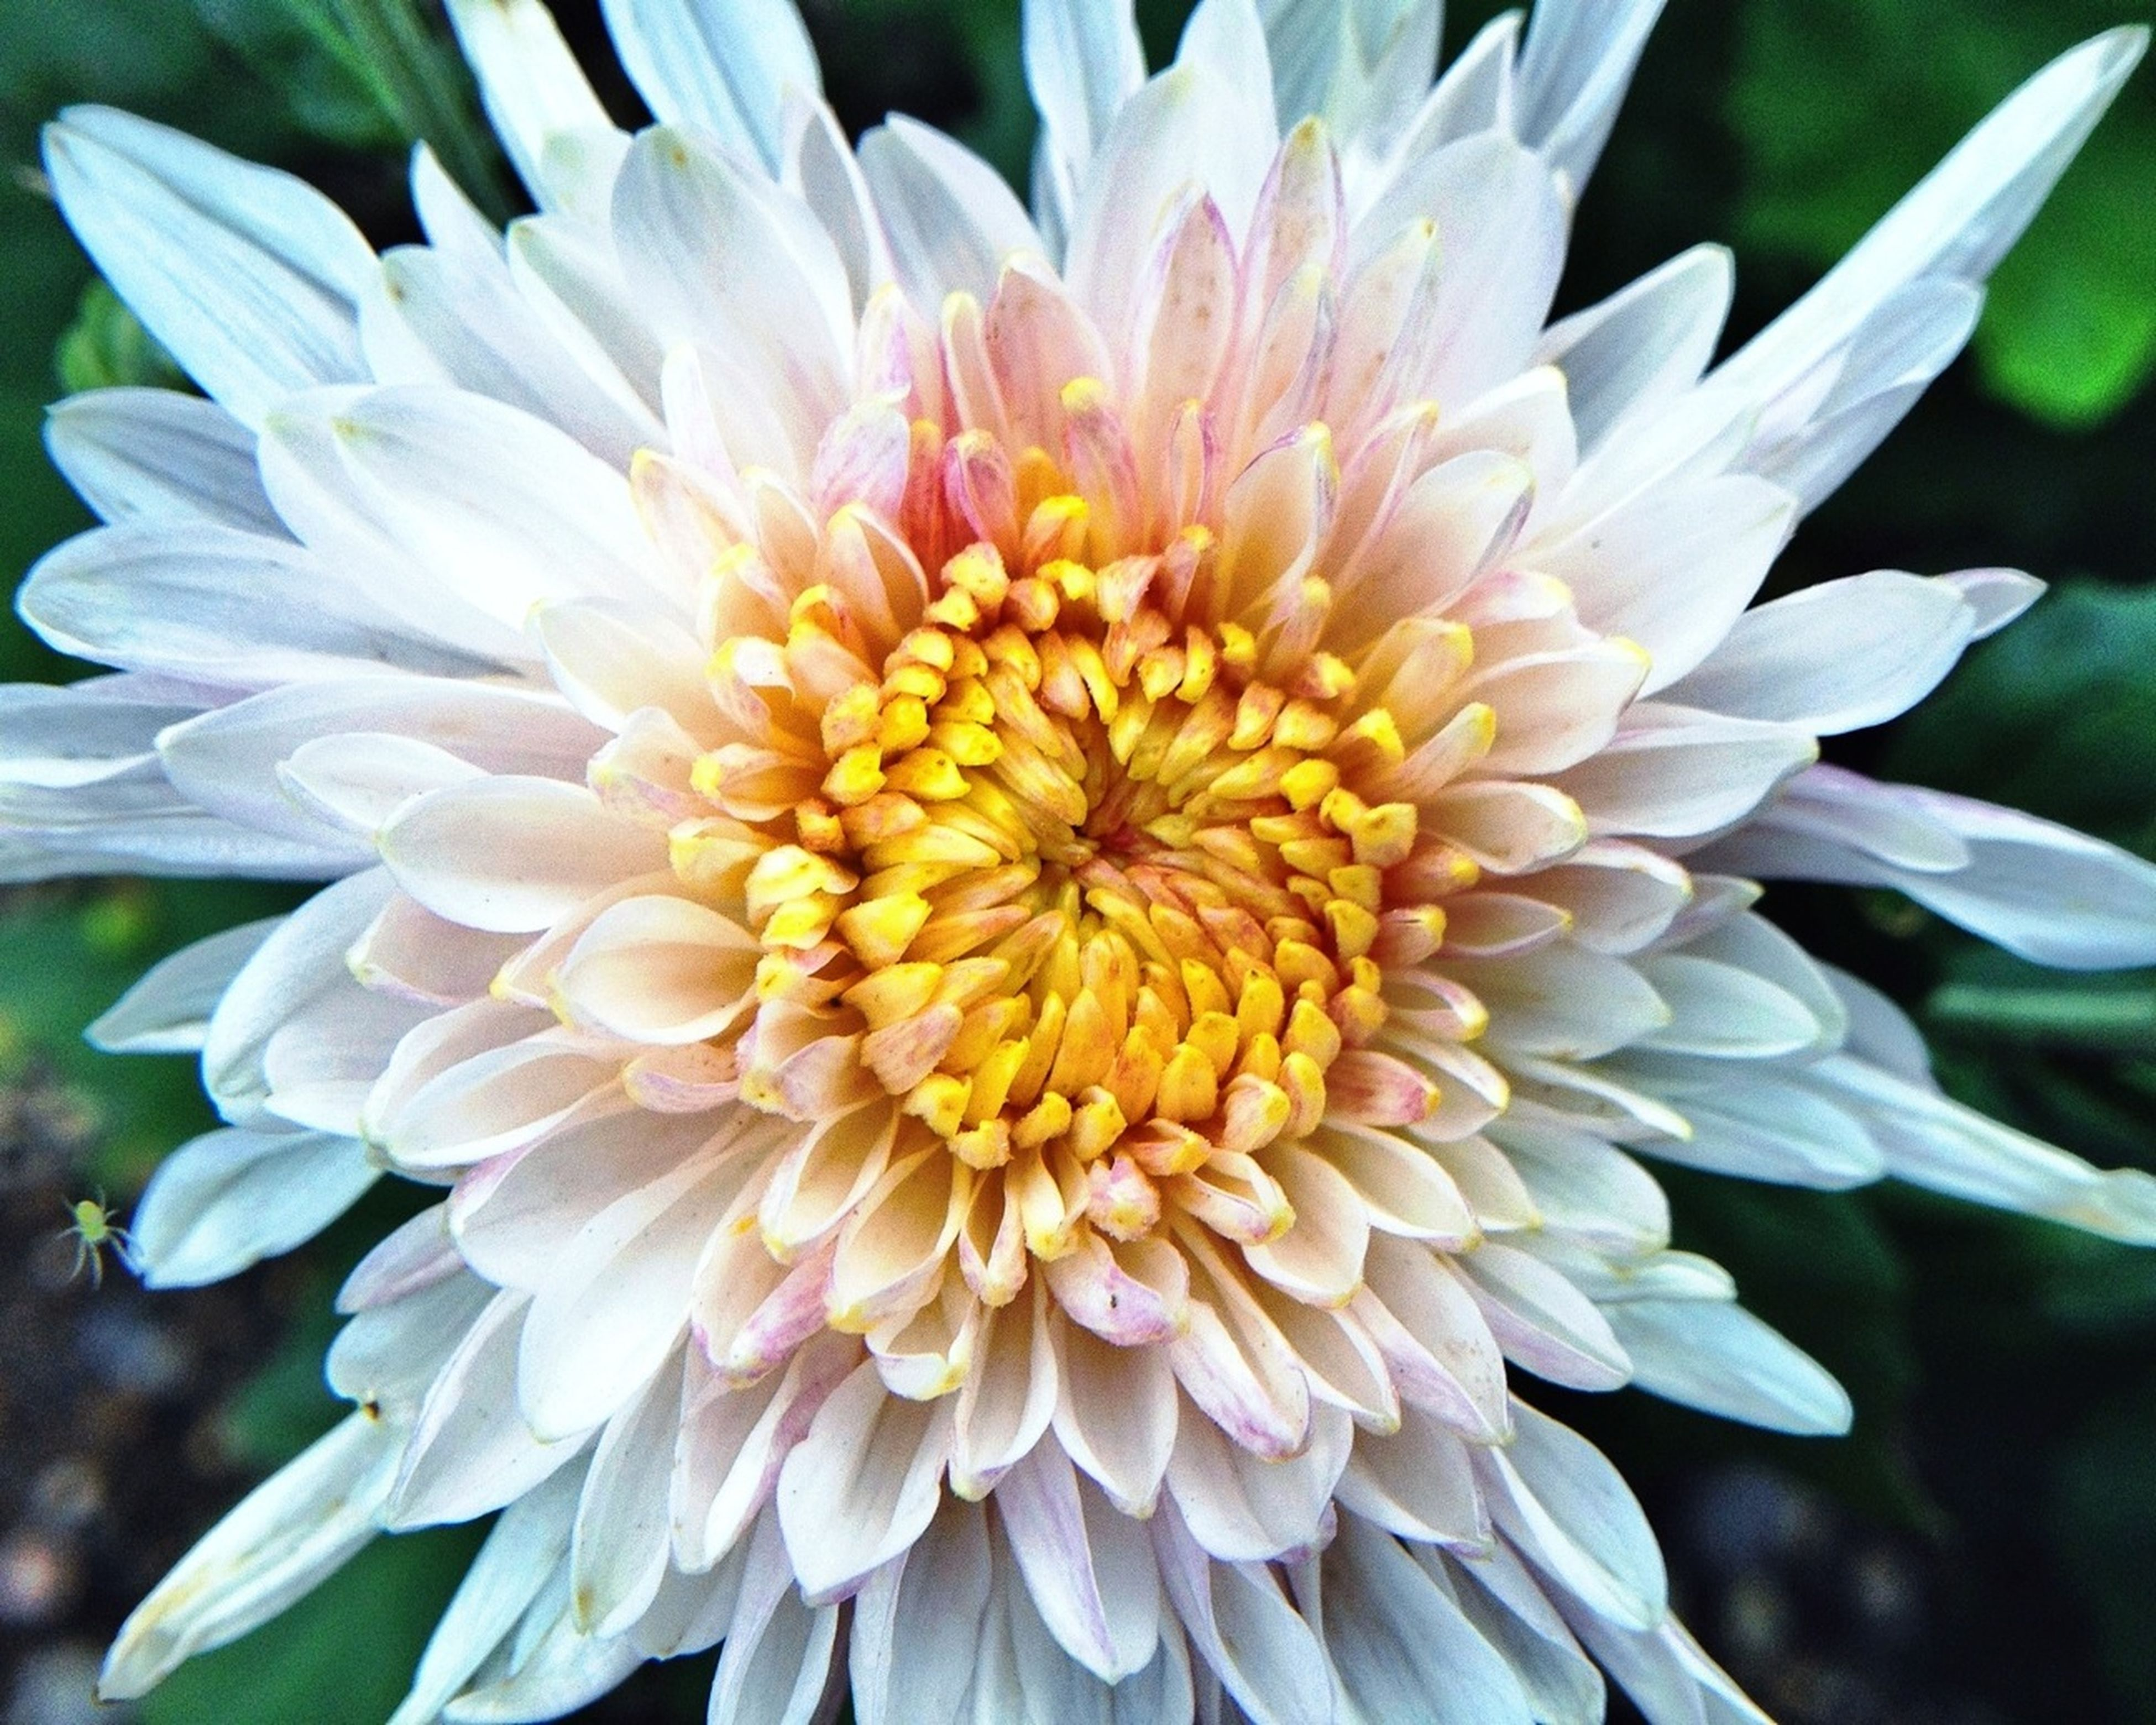 flower, petal, freshness, flower head, fragility, beauty in nature, growth, close-up, blooming, pollen, nature, single flower, focus on foreground, plant, white color, in bloom, dahlia, park - man made space, no people, day